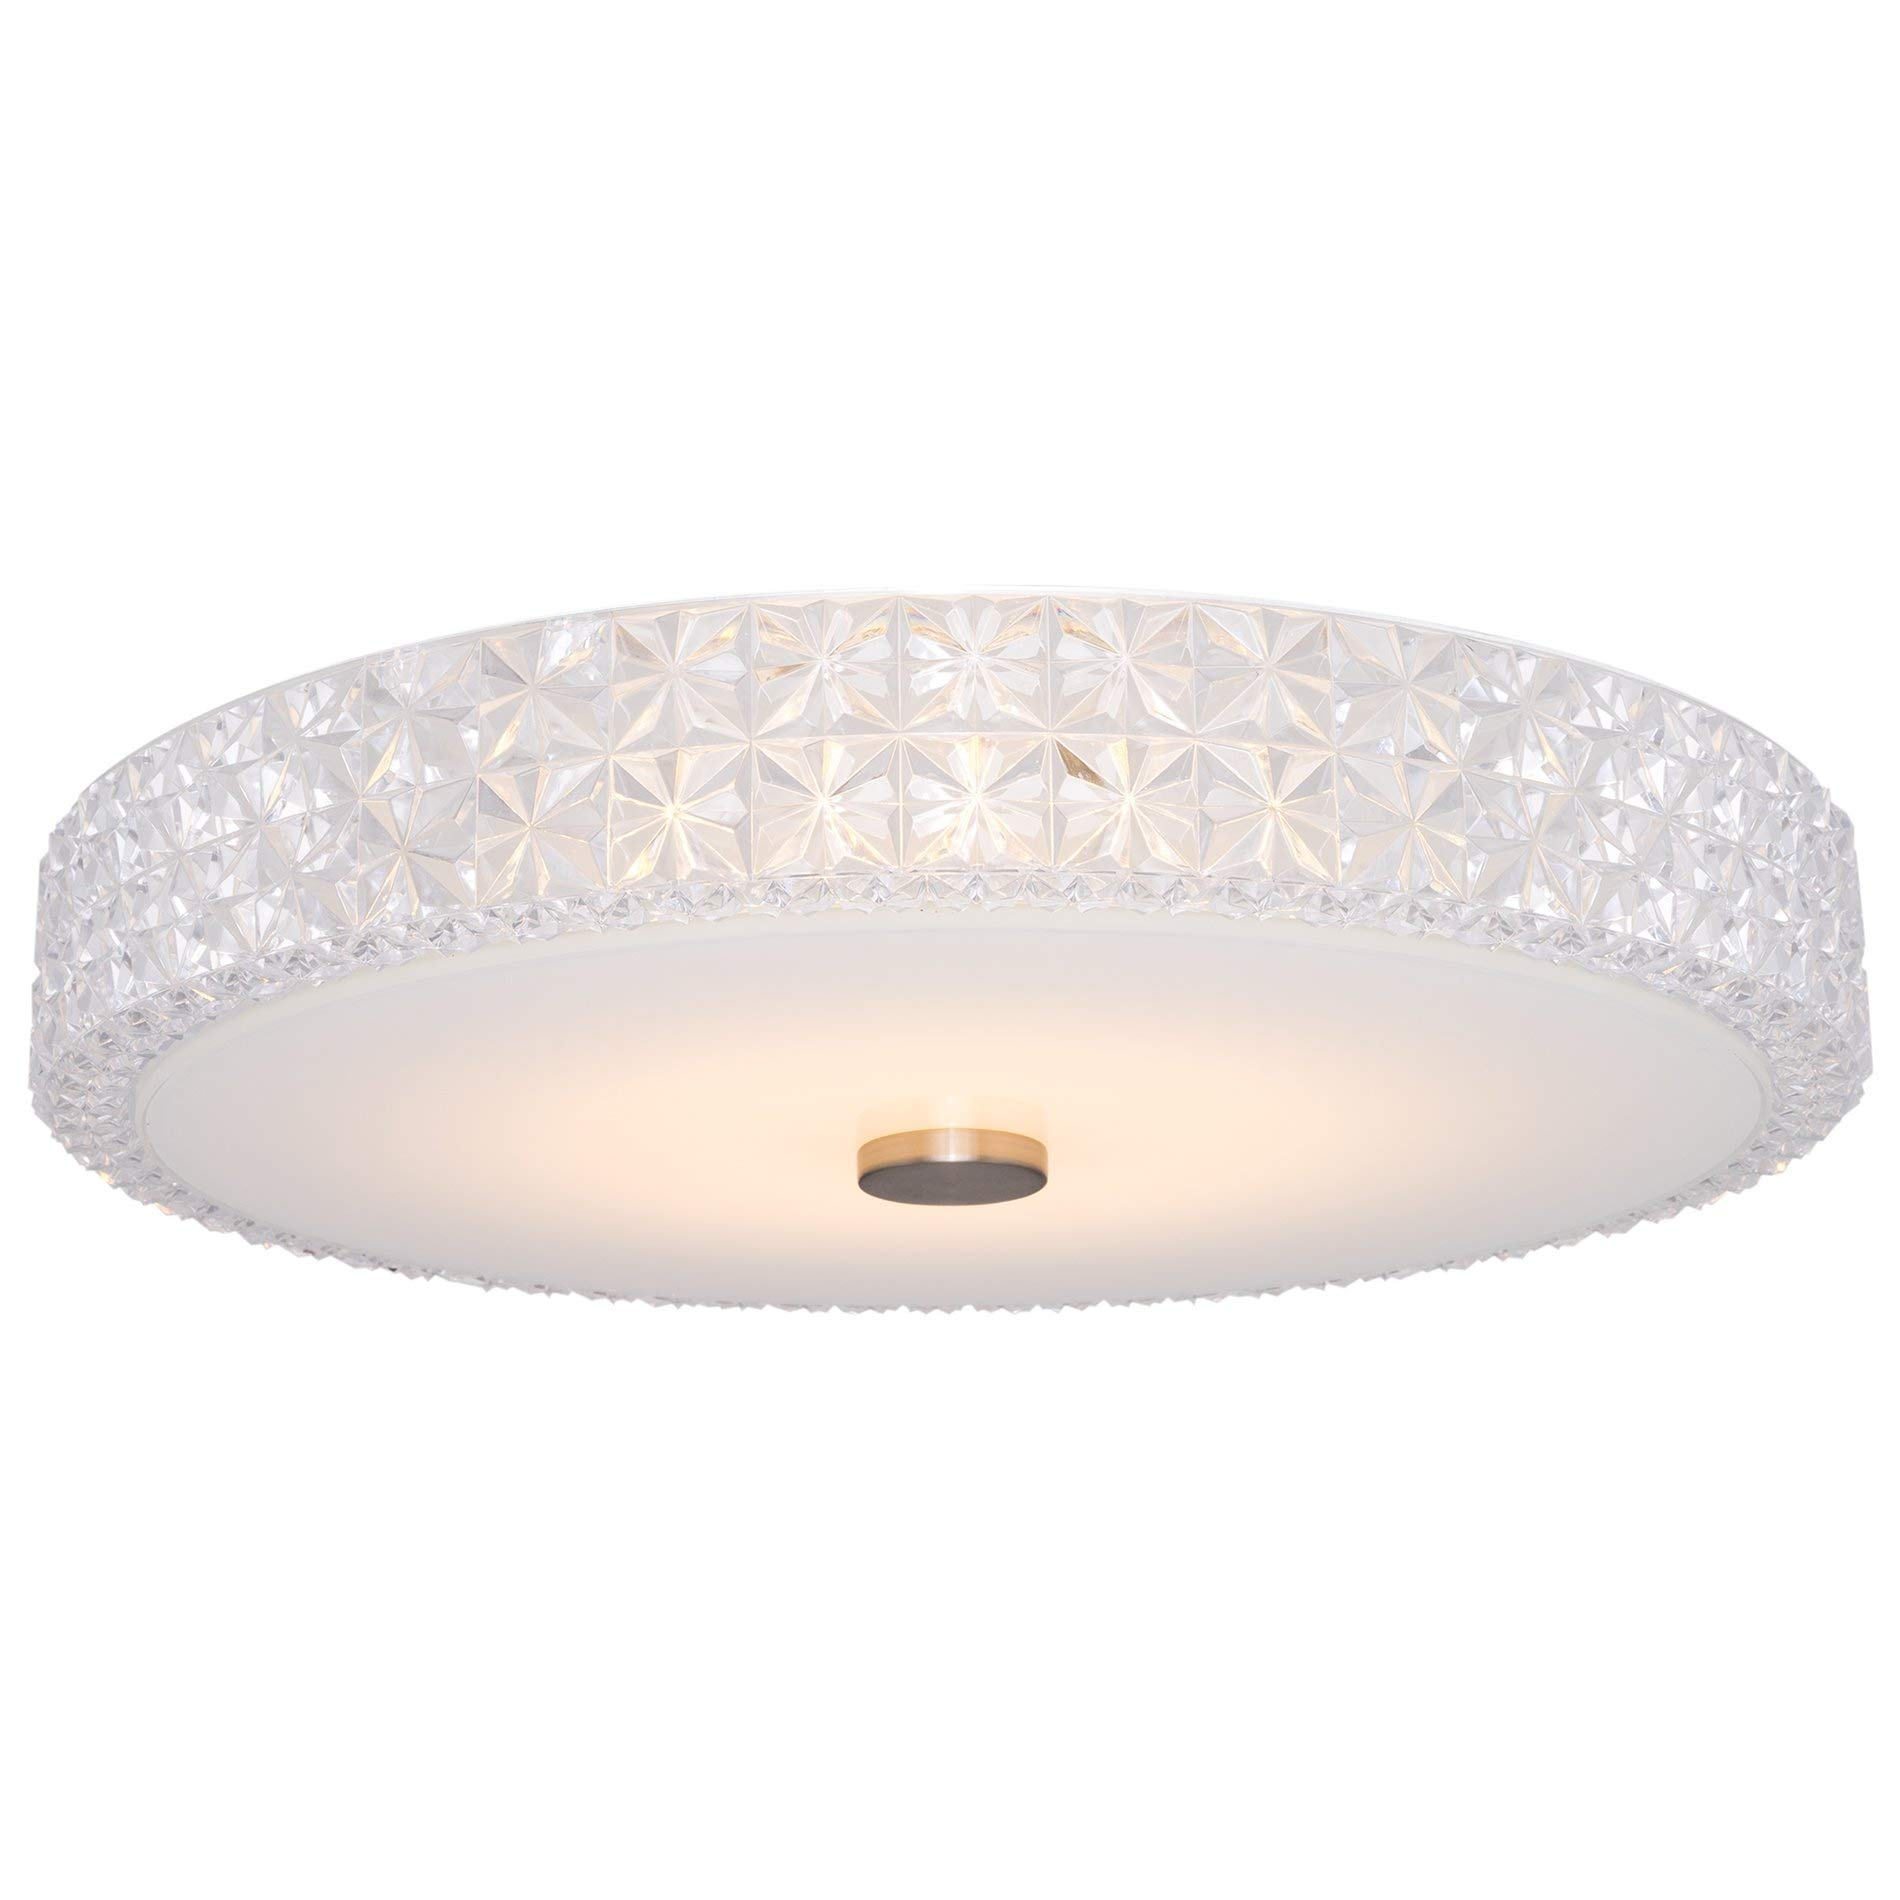 Kira Home Maxine 15'' Modern Flush Mount Ceiling Light, Integrated 20W LED (120W eq.), Clear Crystal Style Shade + Round Glass Diffuser, 3000k Warm White Light, White Finish by Kira Home (Image #1)